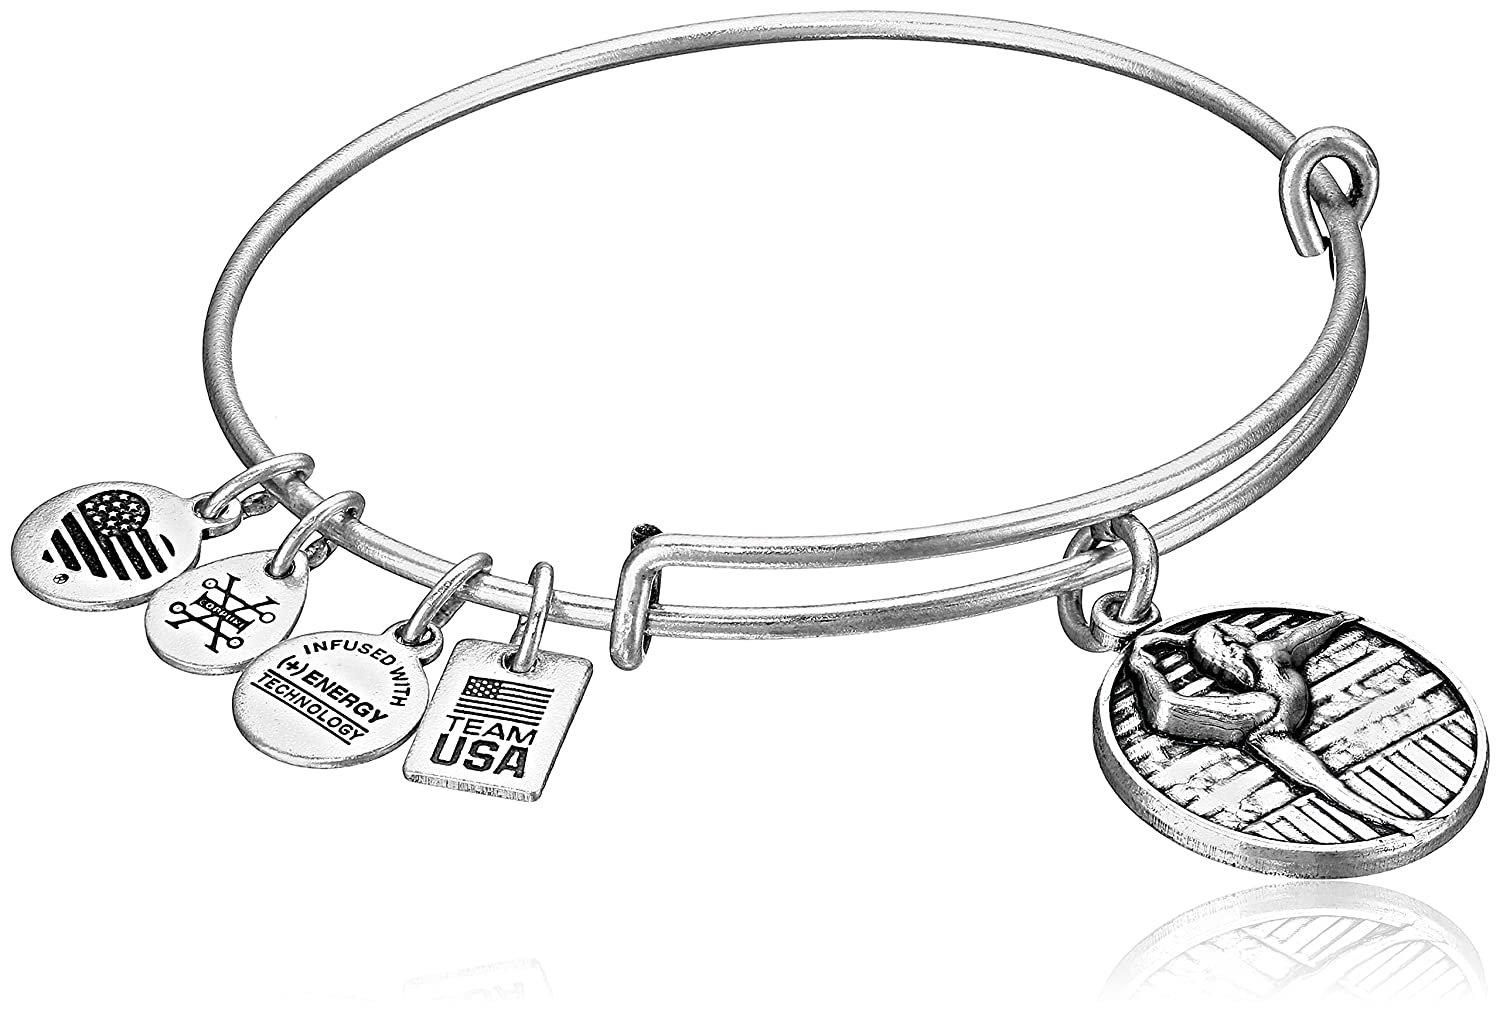 interlok view bangal bangle alternate bracelets bracelet os hinged product size